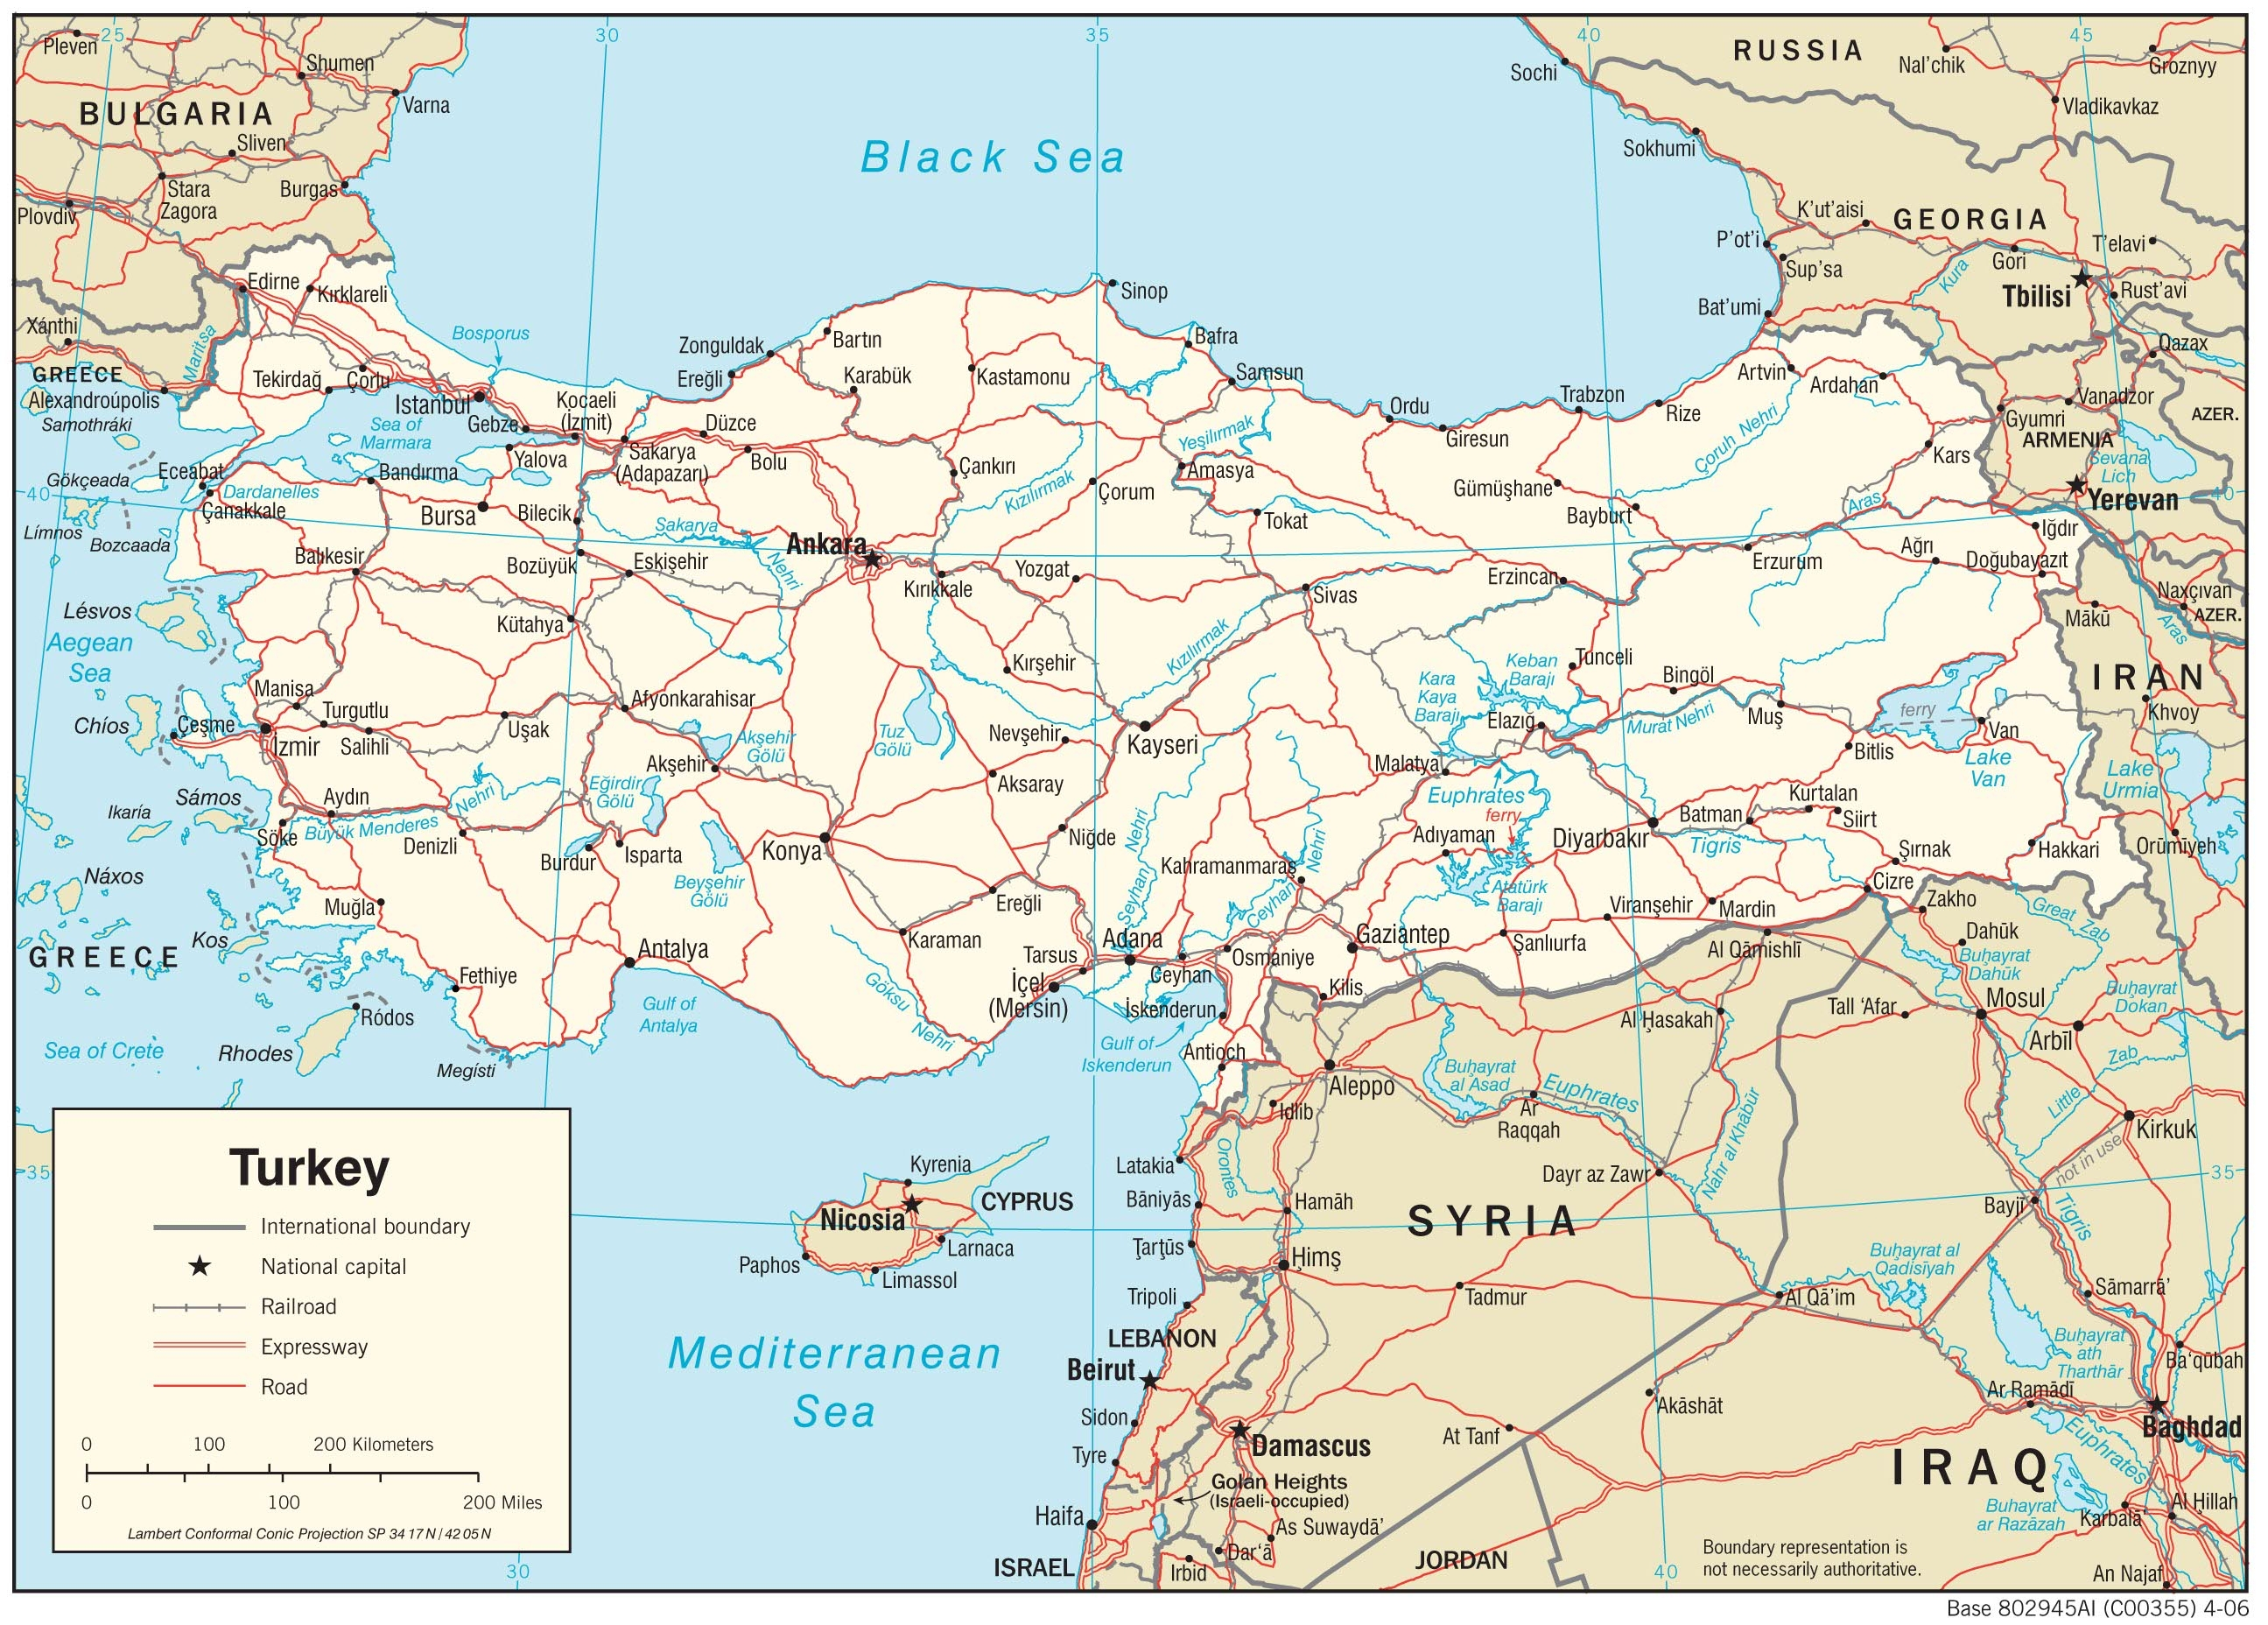 http://www.lib.utexas.edu/maps/middle_east_and_asia/turkey_trans-2006.jpg